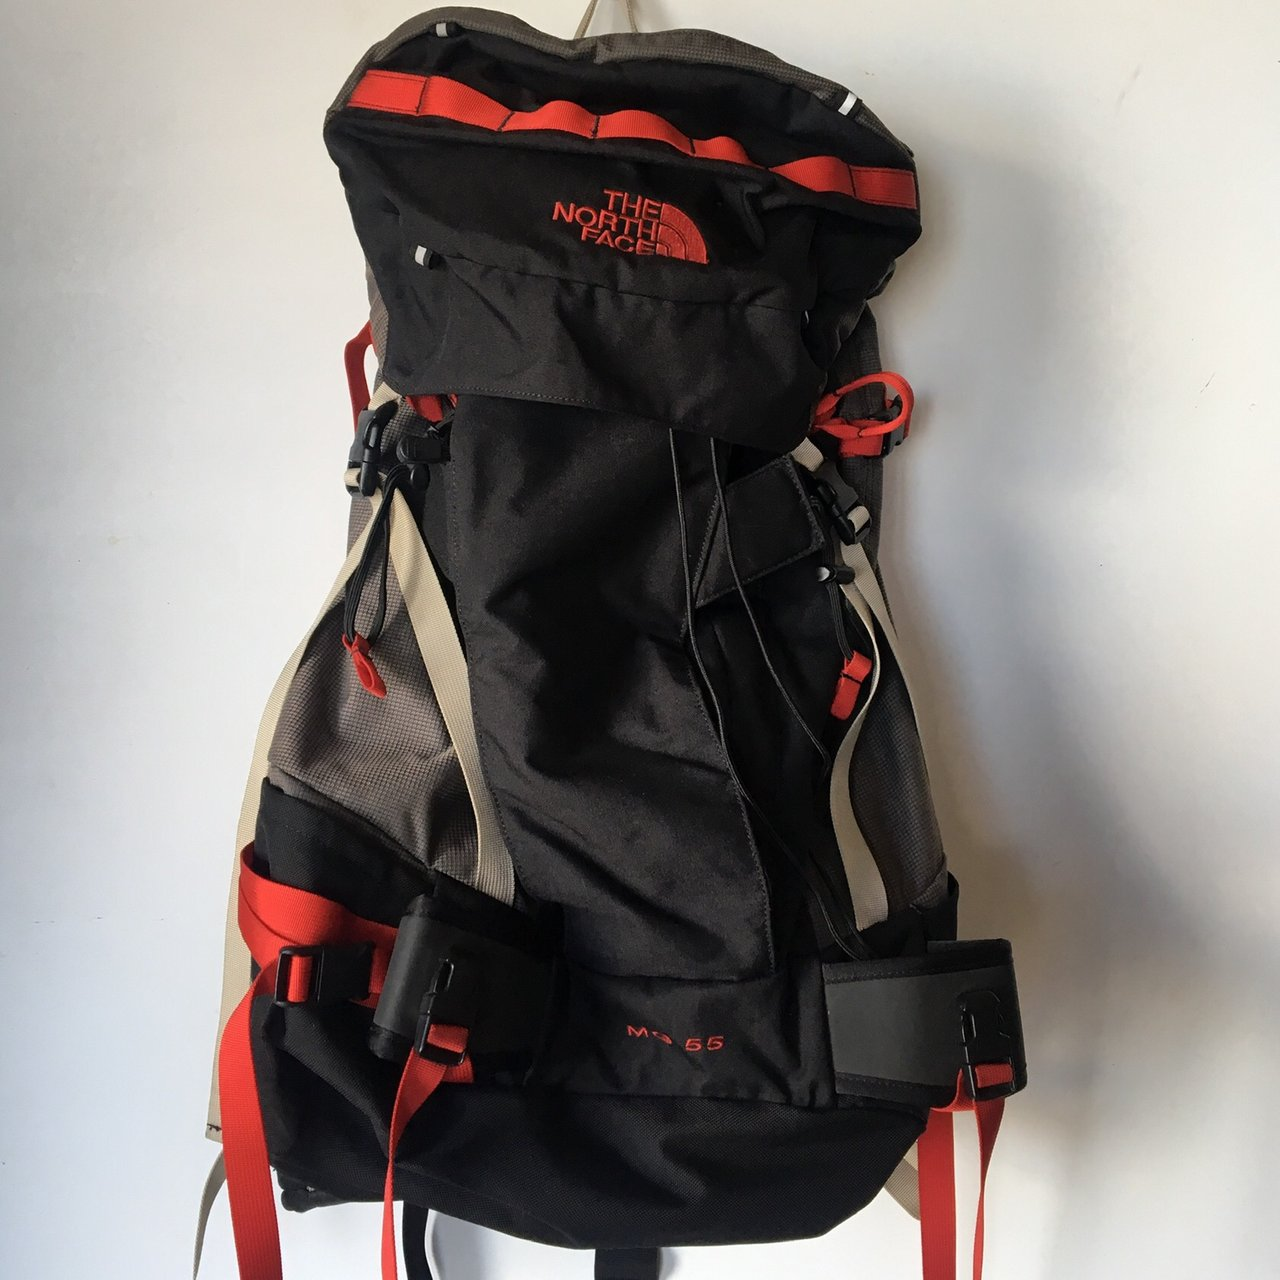 bce050aee2 The North Face travel Backpack.